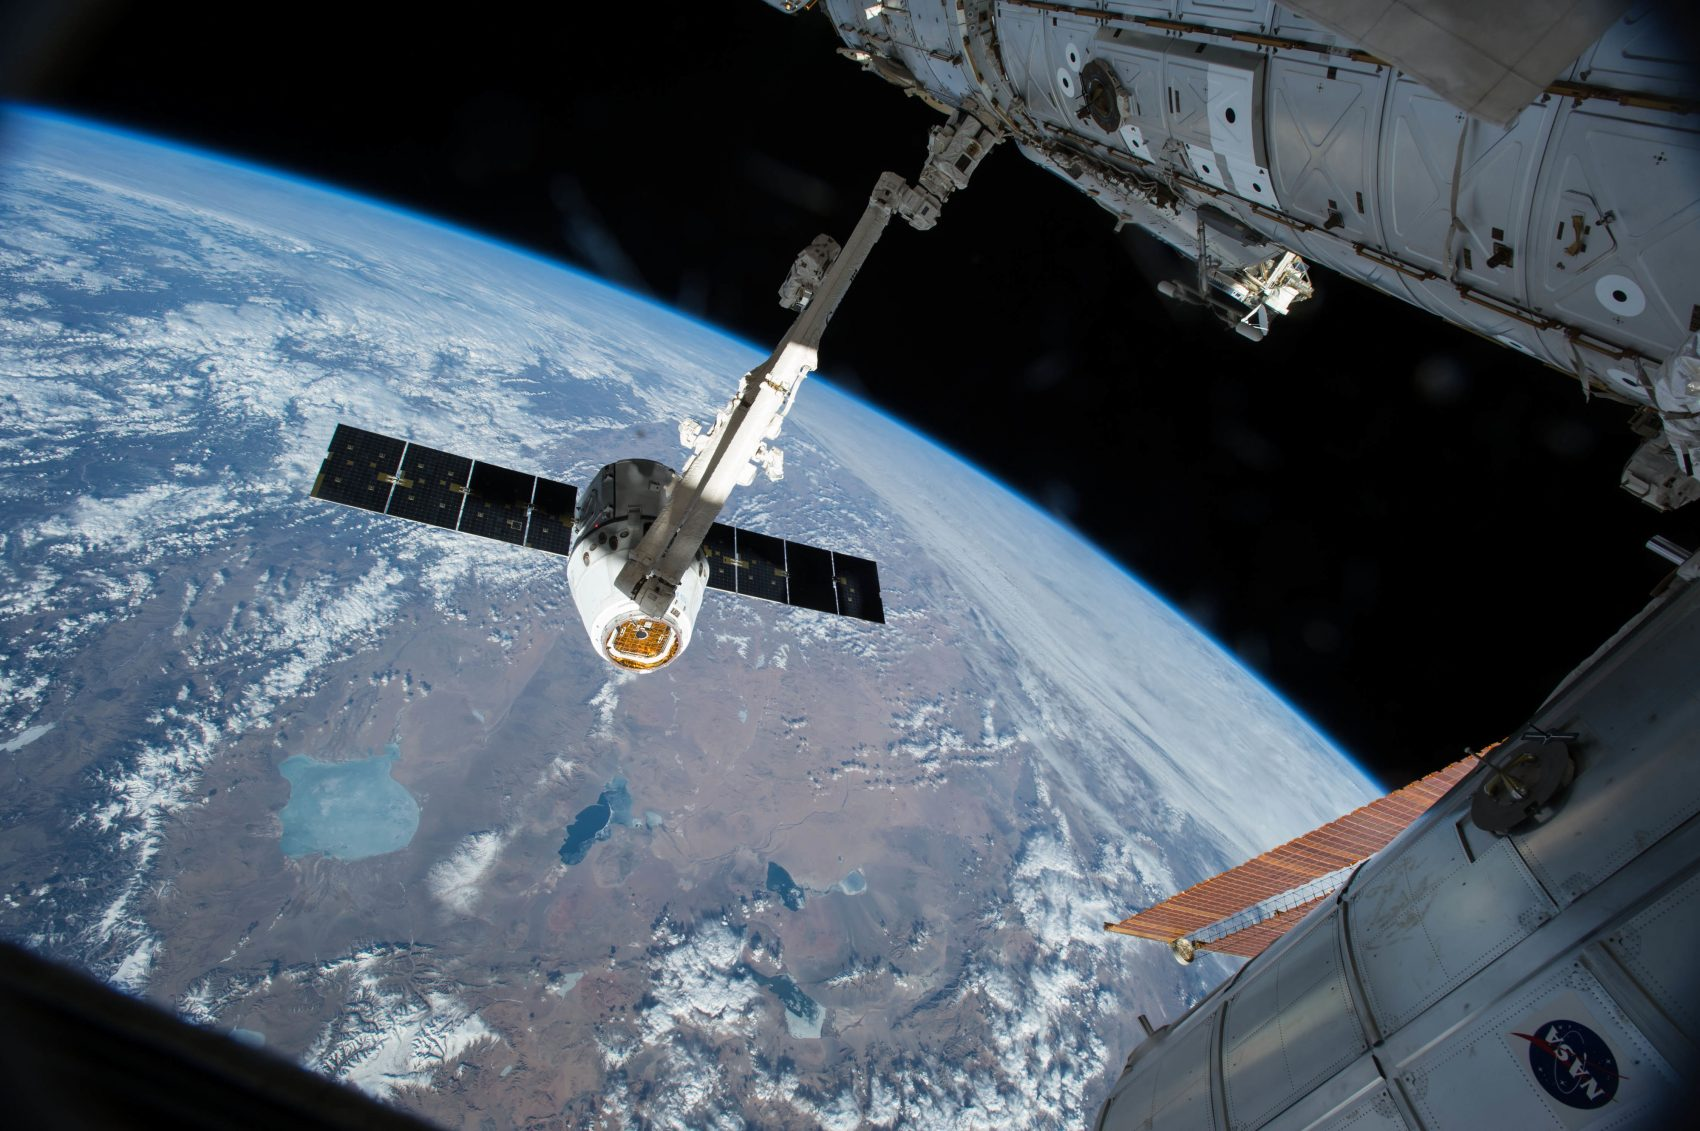 In this April 17, 2015 photo, the Canadarm 2 reaches out to capture the SpaceX Dragon cargo spacecraft for docking to the International Space Station. (NASA/AP)